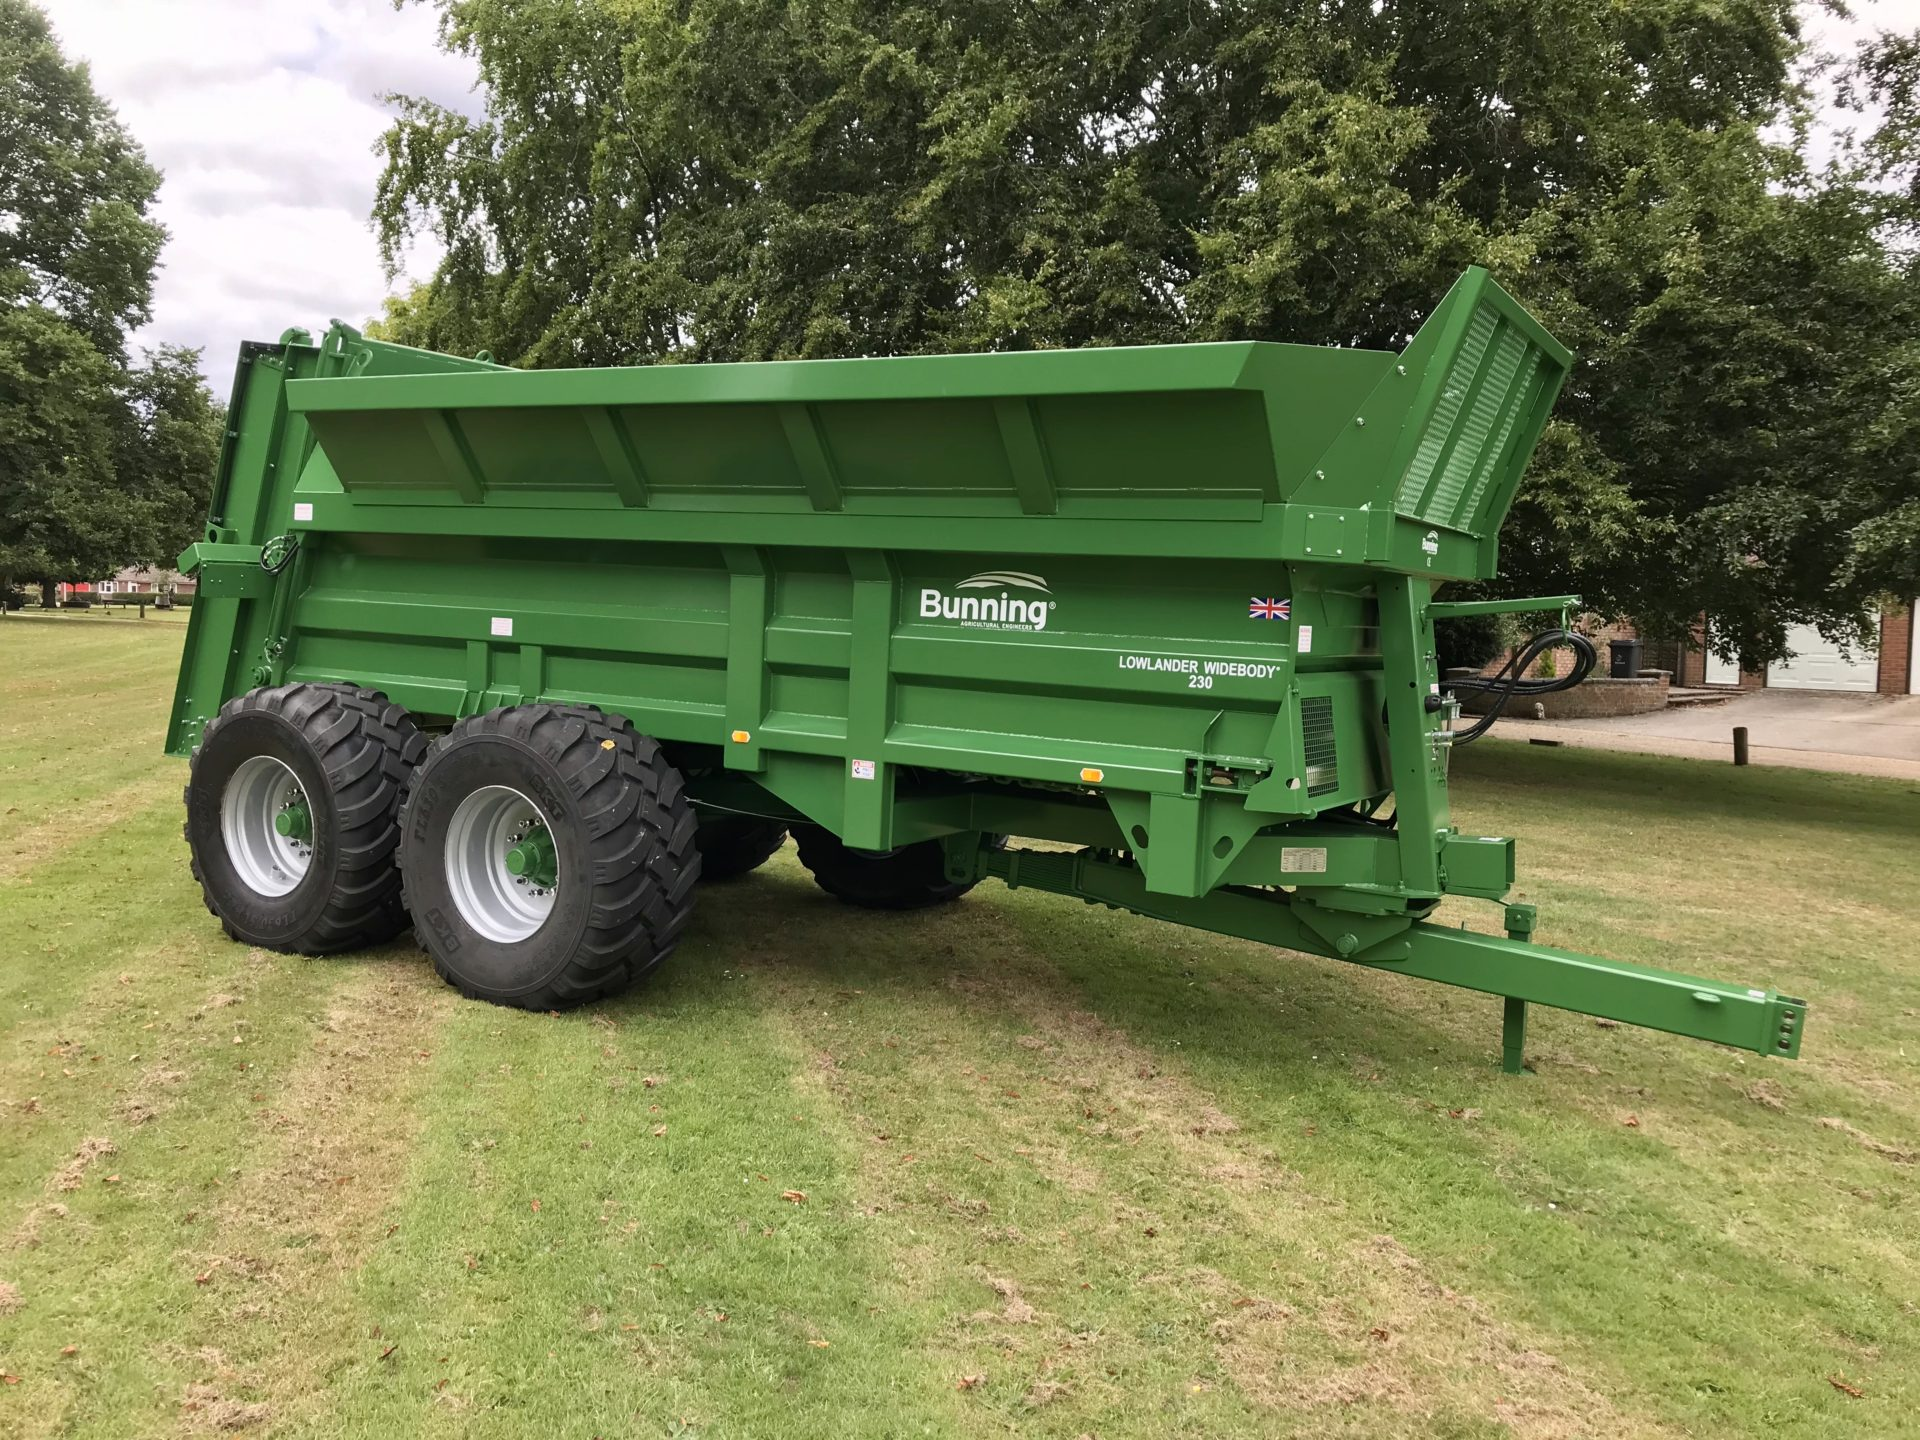 Lowlander 230 TVA (Export) Widebody with slurry door, bolt on extensions, rocking beam axles, lift off augers, sprung drawbar, weigh cell ready, 650/55 R26.5 wheels